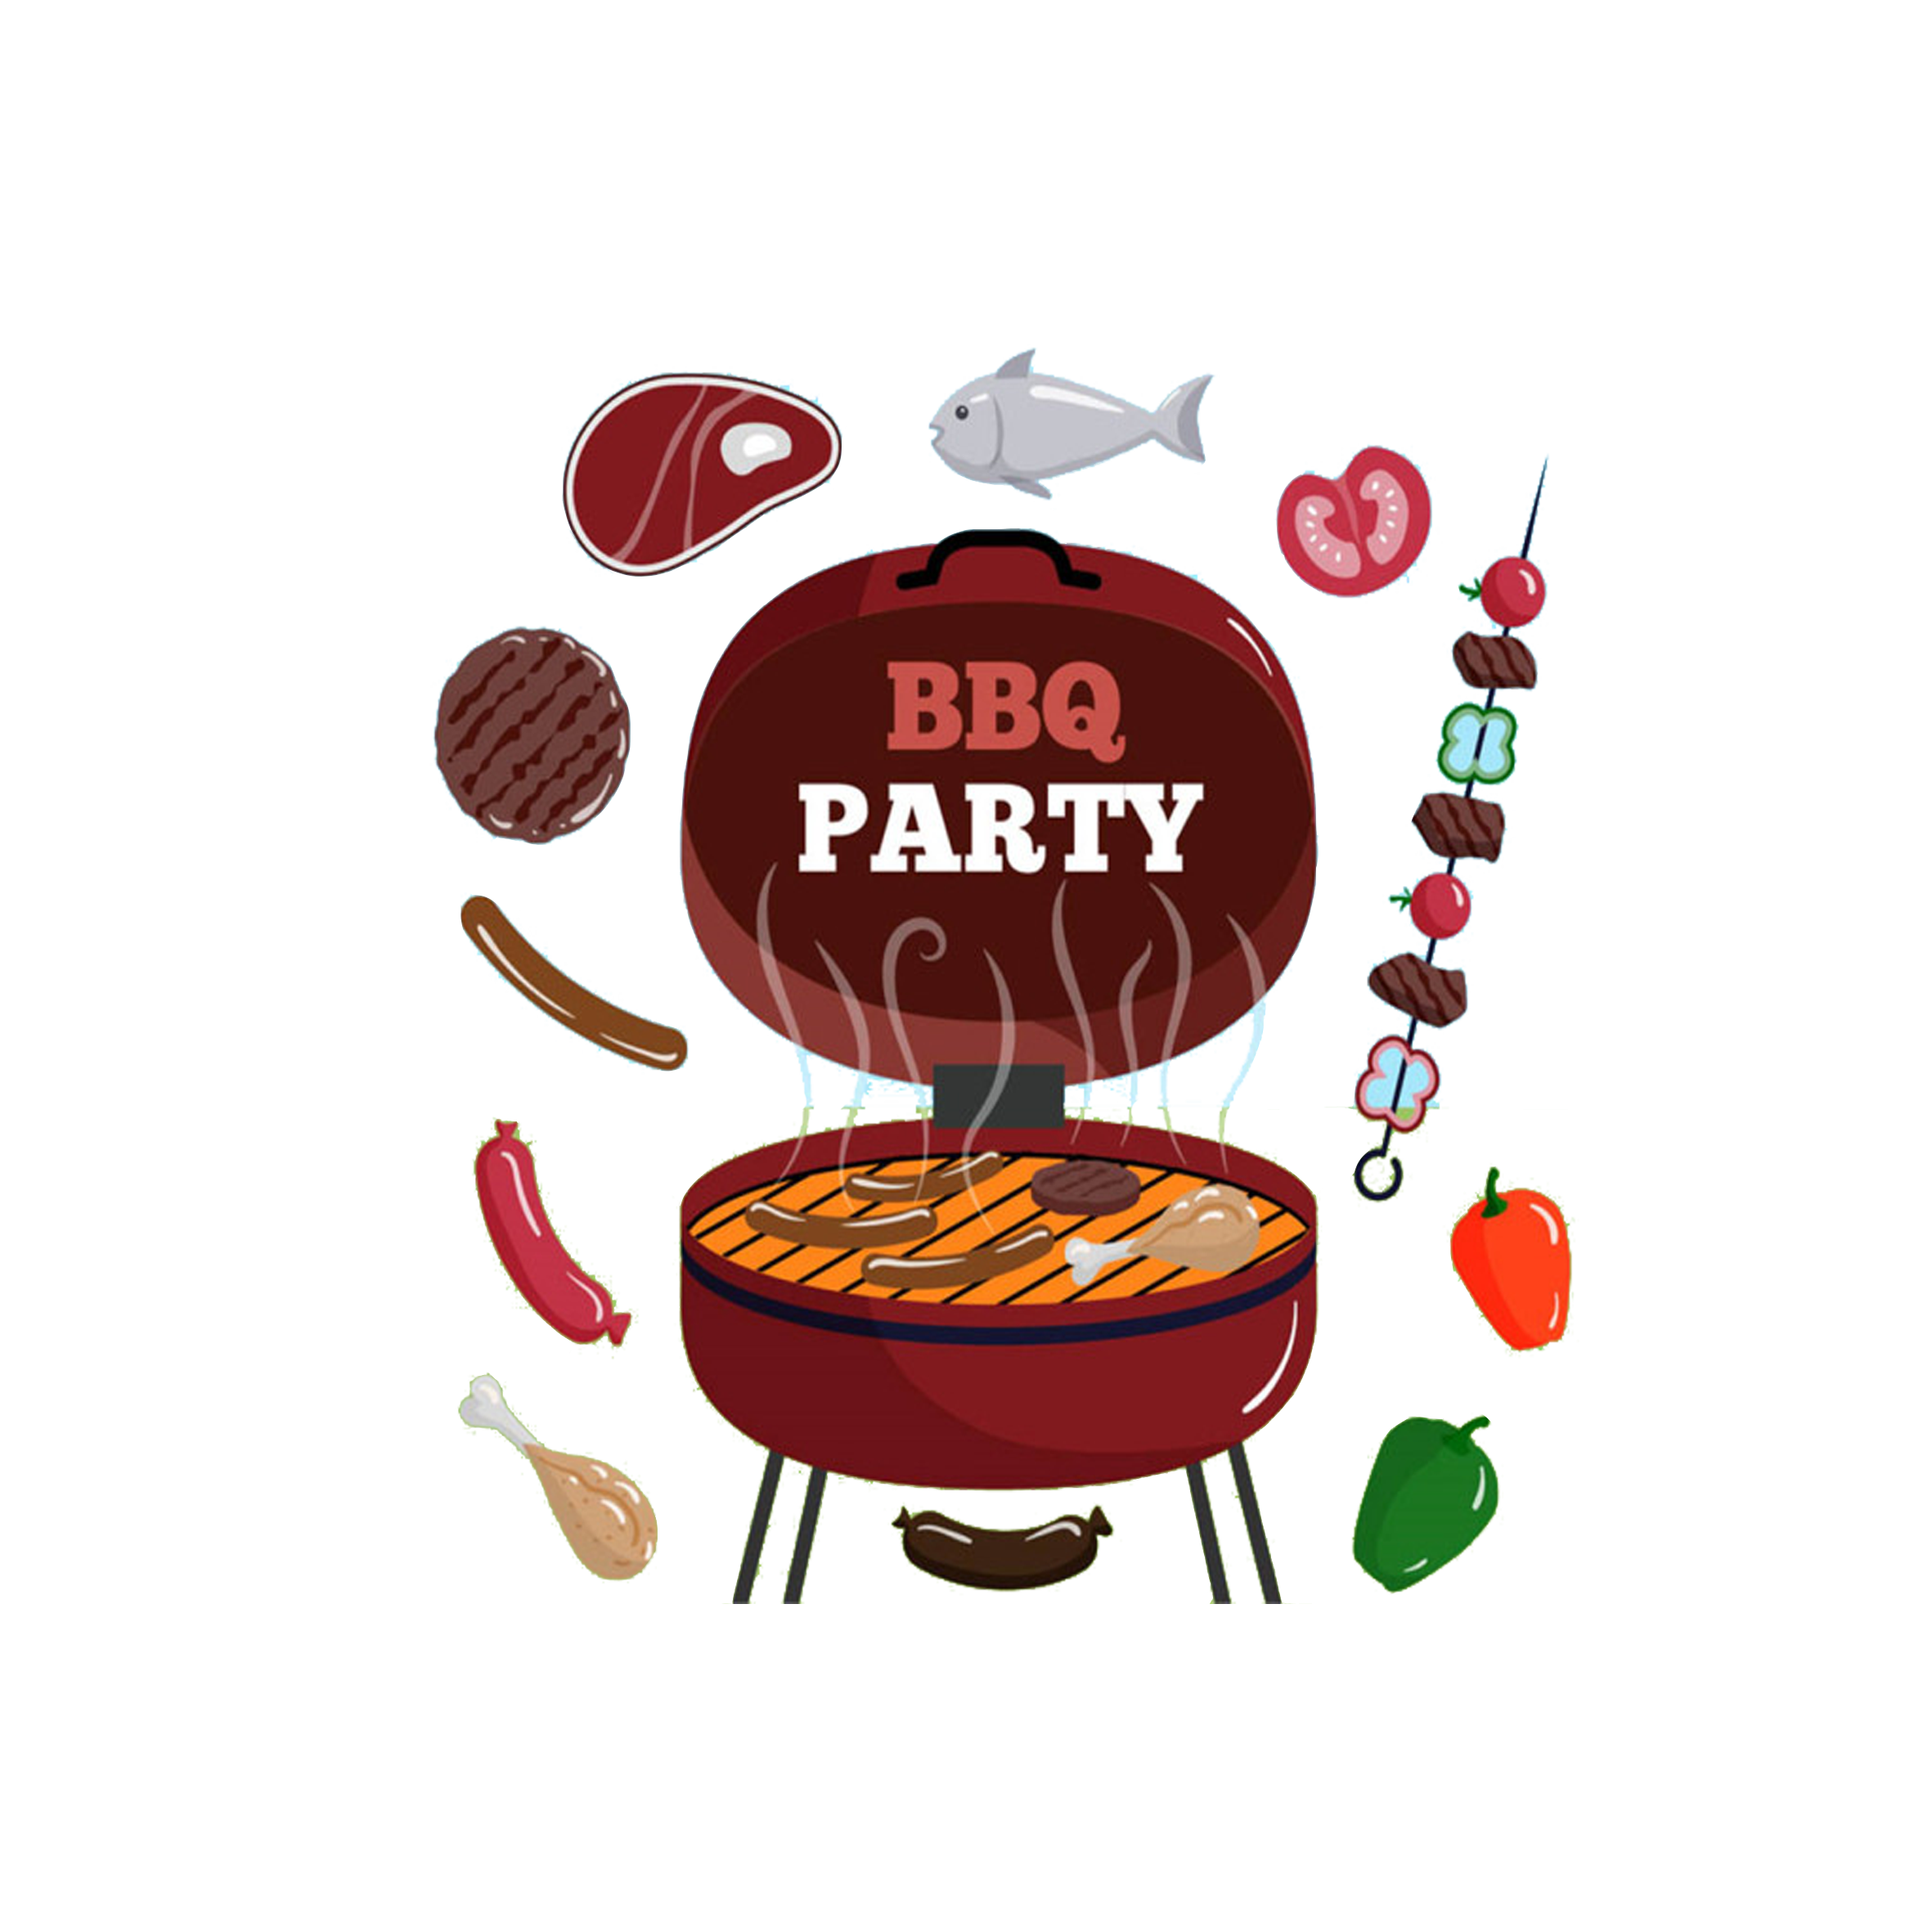 Grill clipart fourth july food. Hot dog red bbq